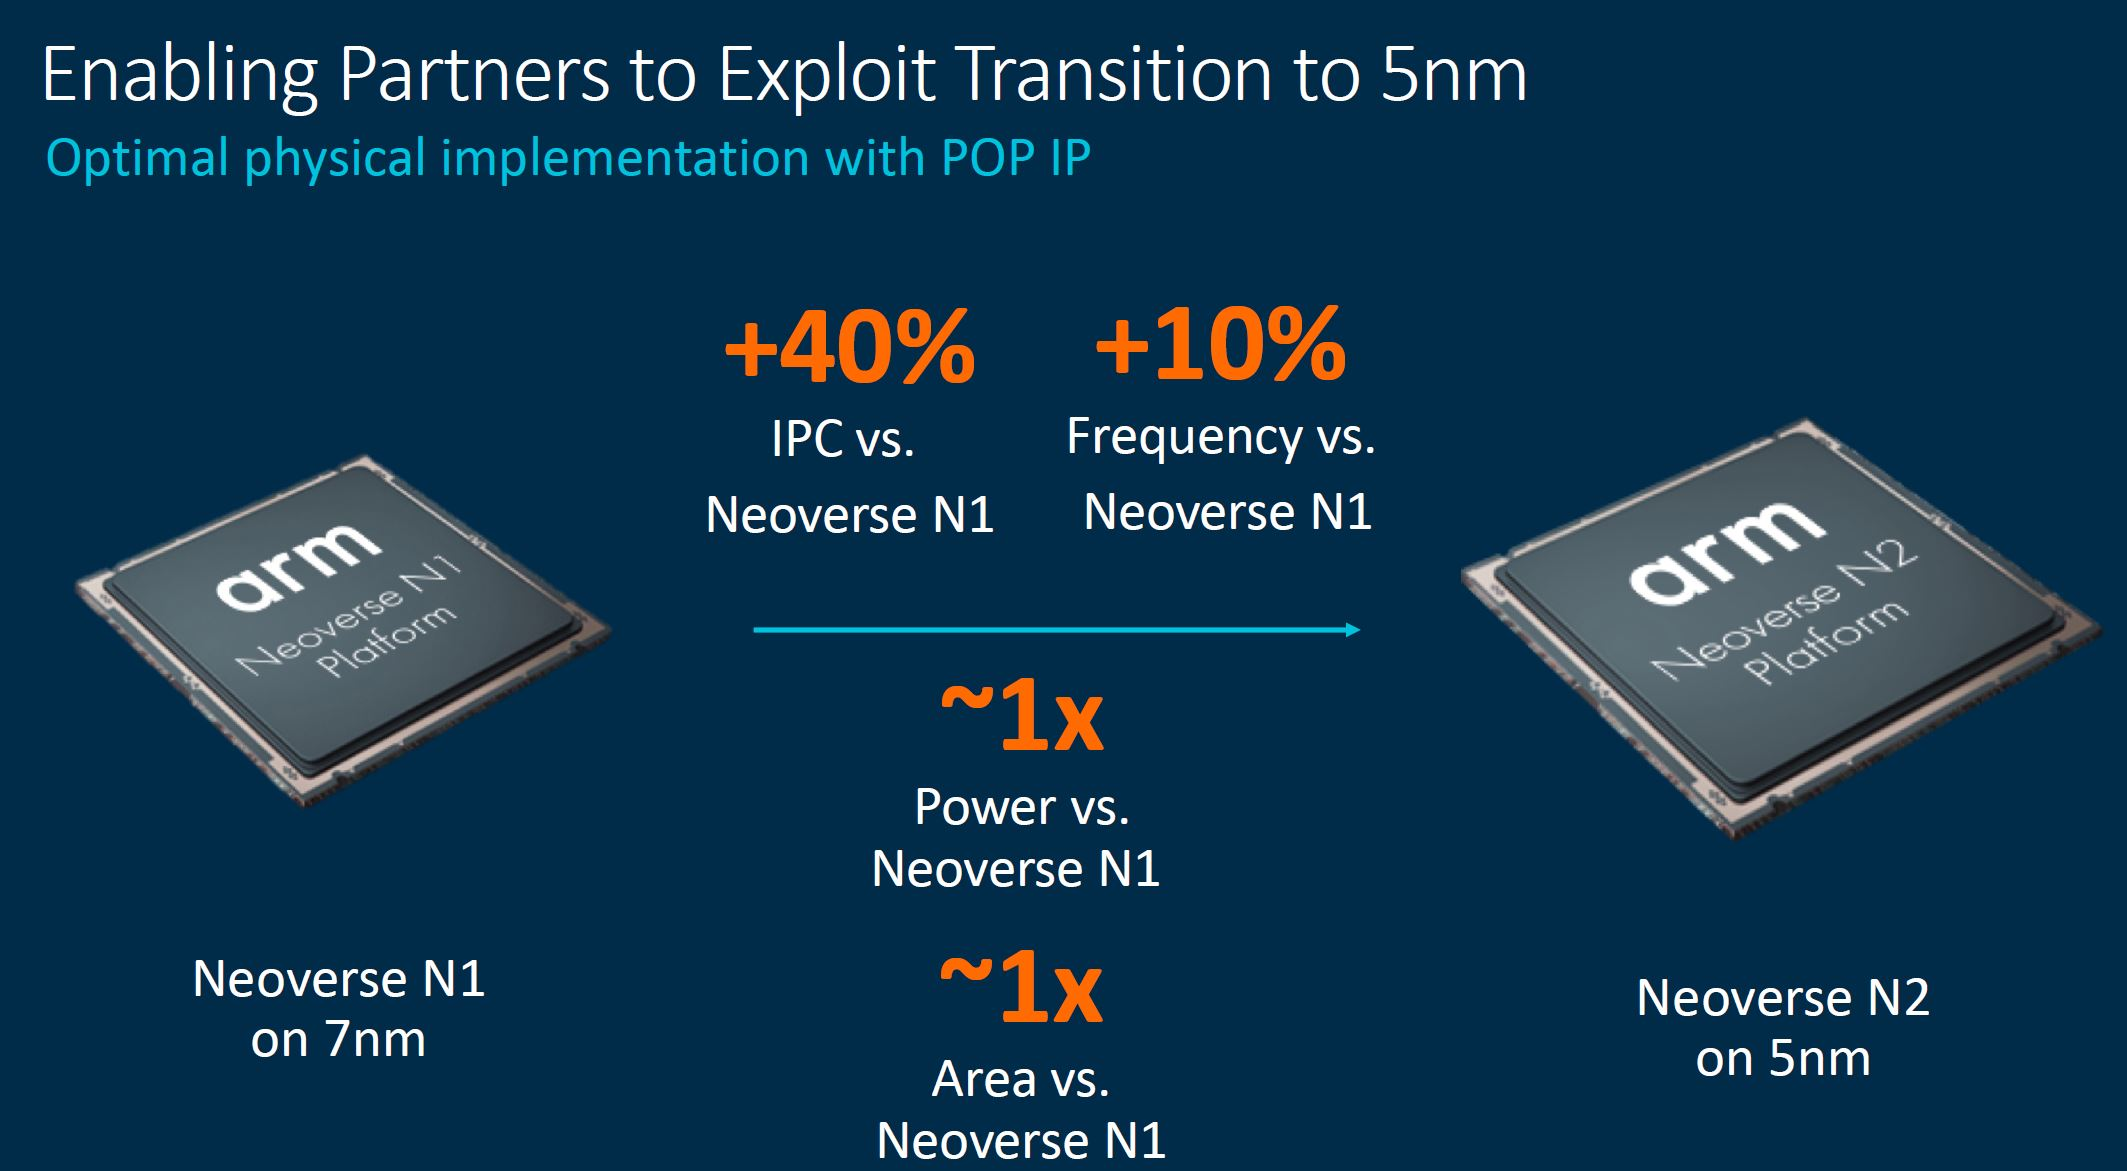 Arm Tech Day 2021 Neoverse N2 5nm Transition